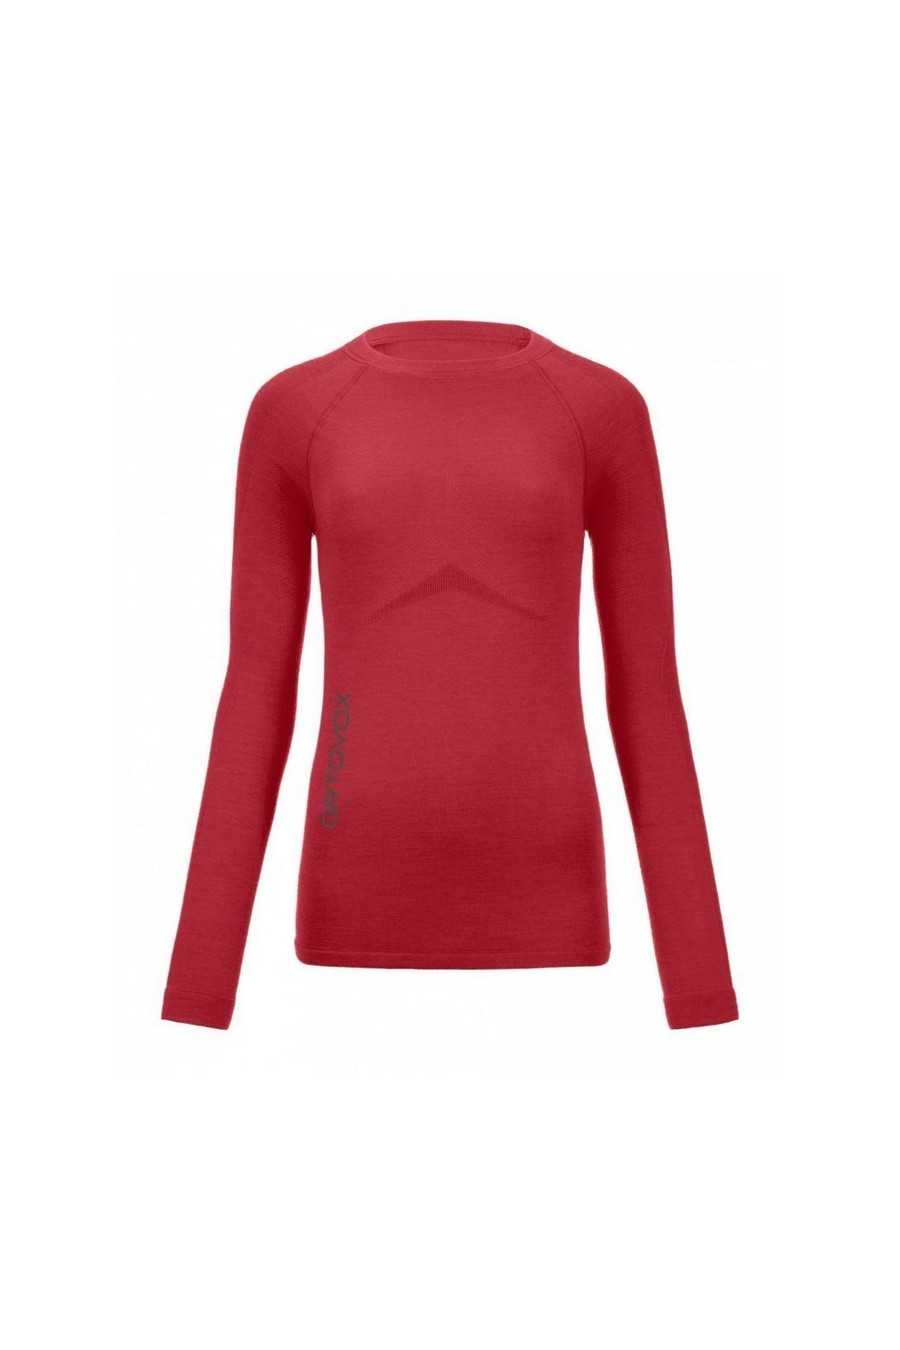 Ortovox 230 Merino Competition Long Sleeve Woman